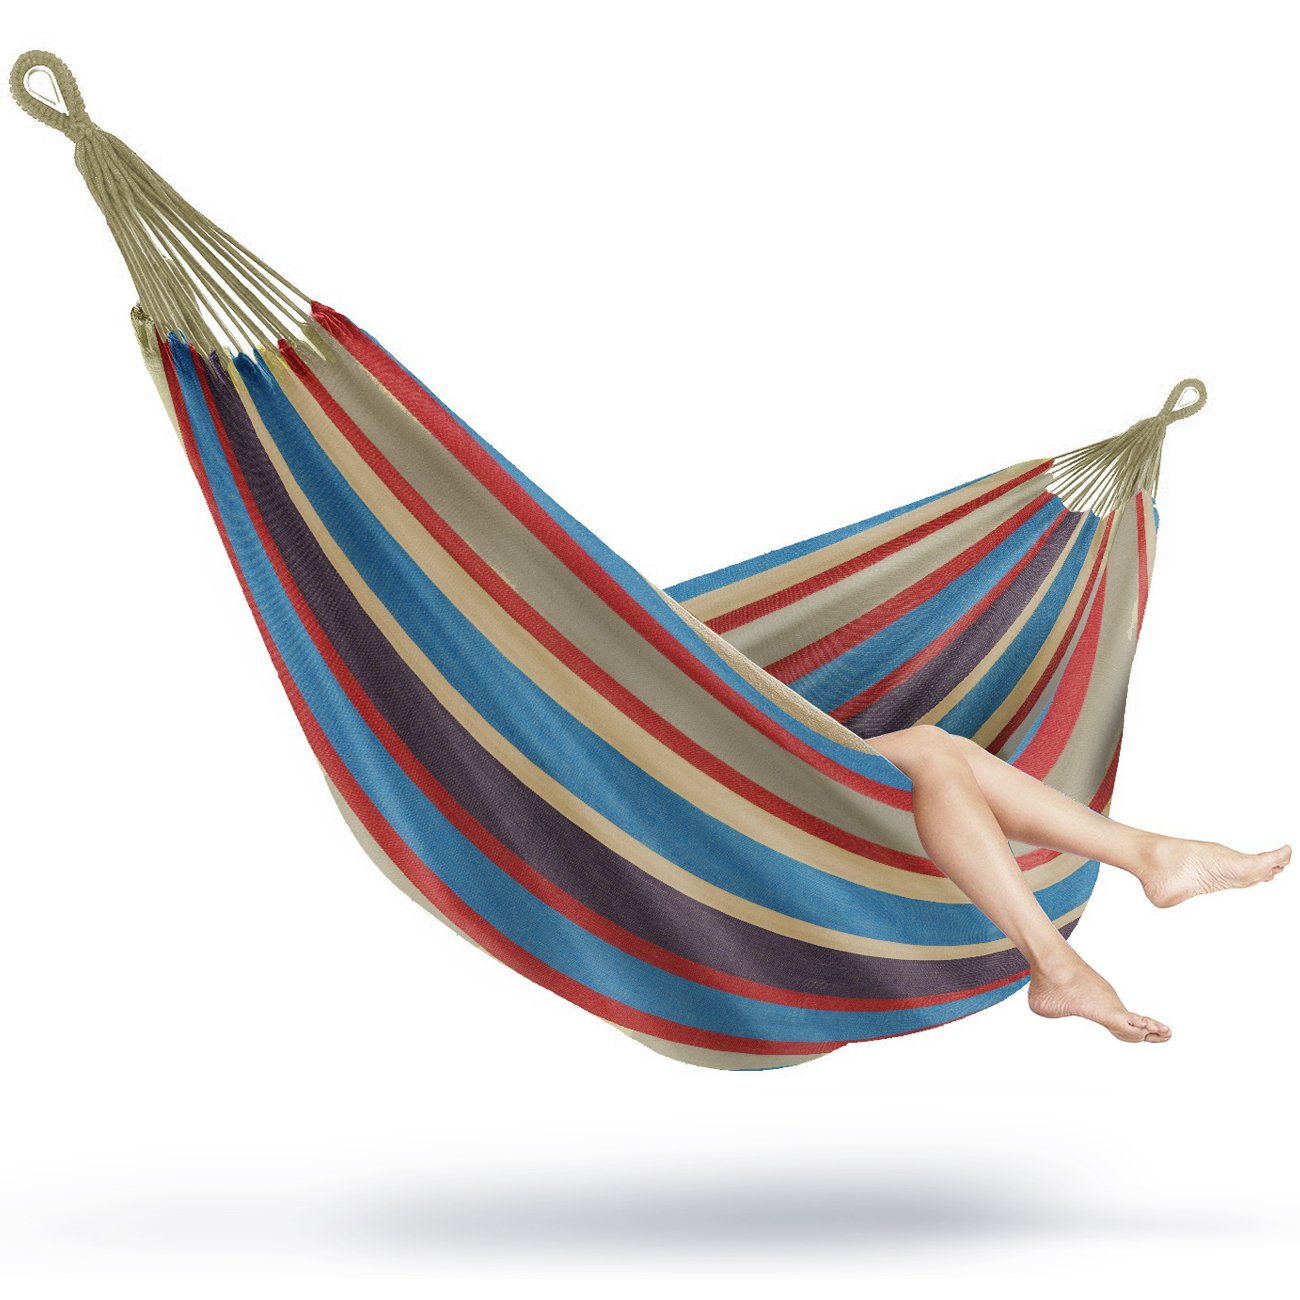 Sorbus Brazilian Double Extra Long Two Person Portable Hammock Be , Hanging  Rope, Carrying Pouch Included Blue/Sand/Purple/Red Stripes